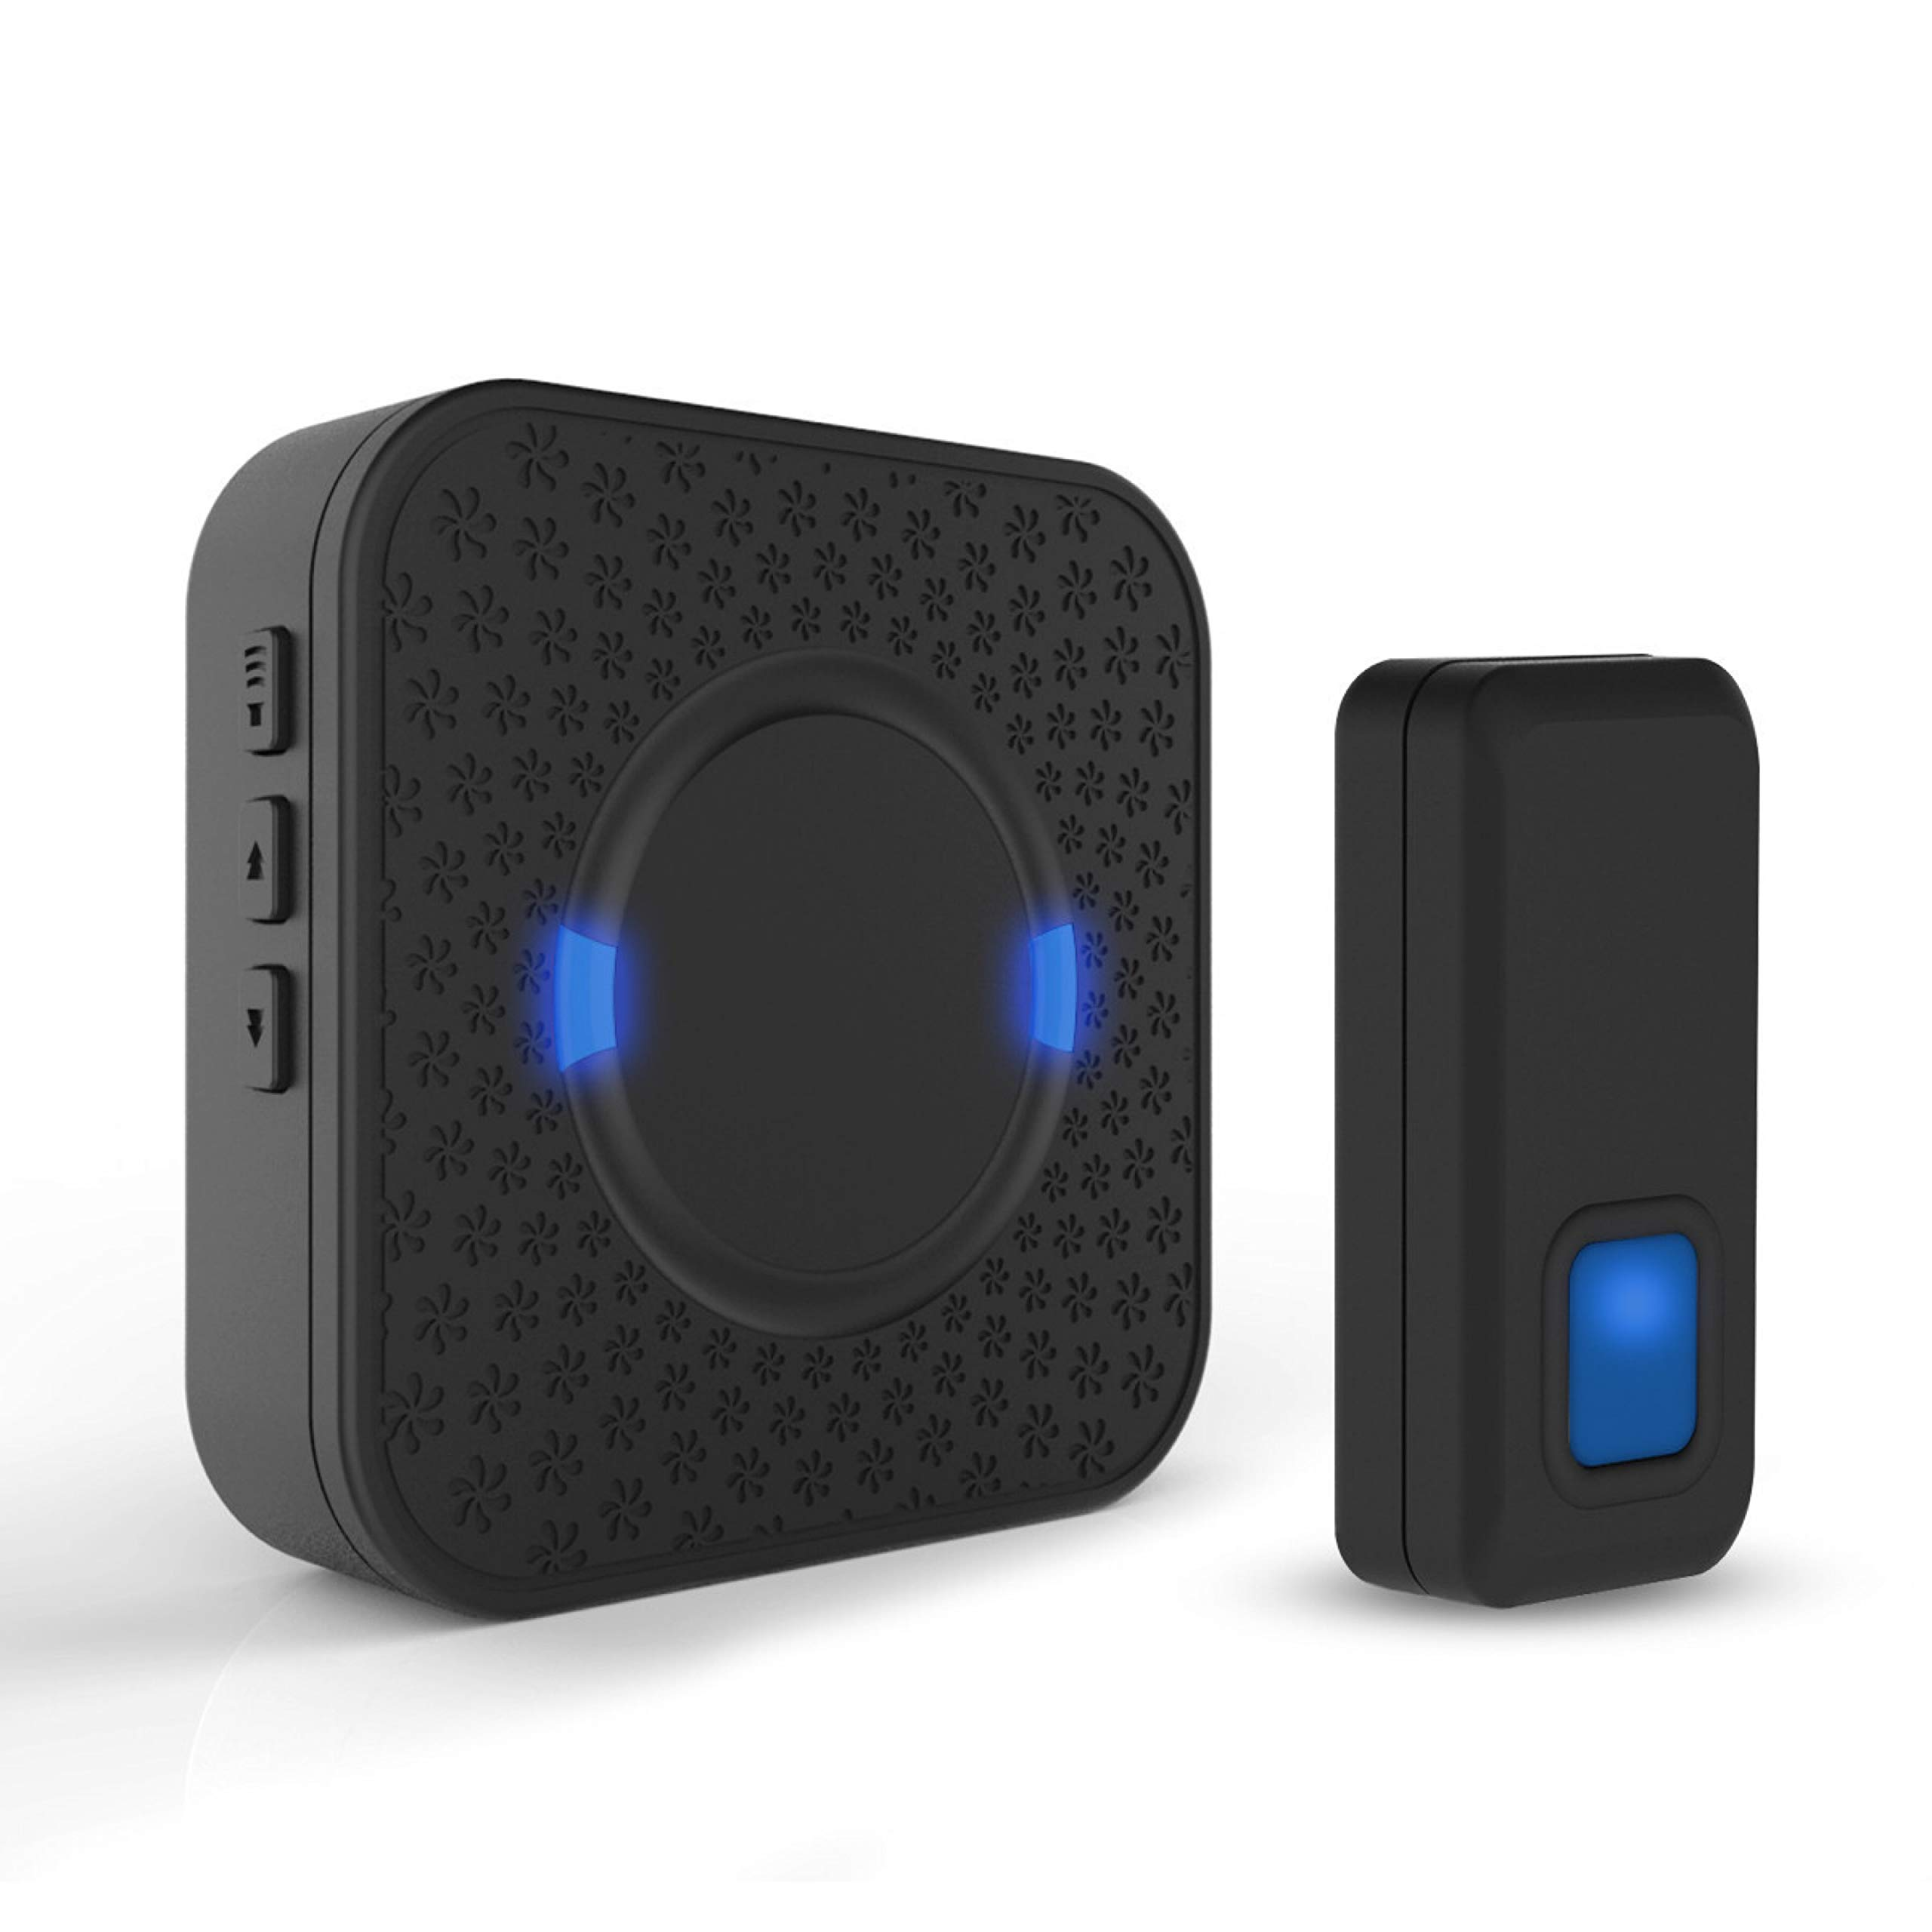 Wireless Doorbell ,Mini Waterpoof Doorbell Chime Operating at 1000 Feet with 55 Melodies, 5 Volume Levels,CD Quality Sound and LED Flash (Black) by XiMaiTe